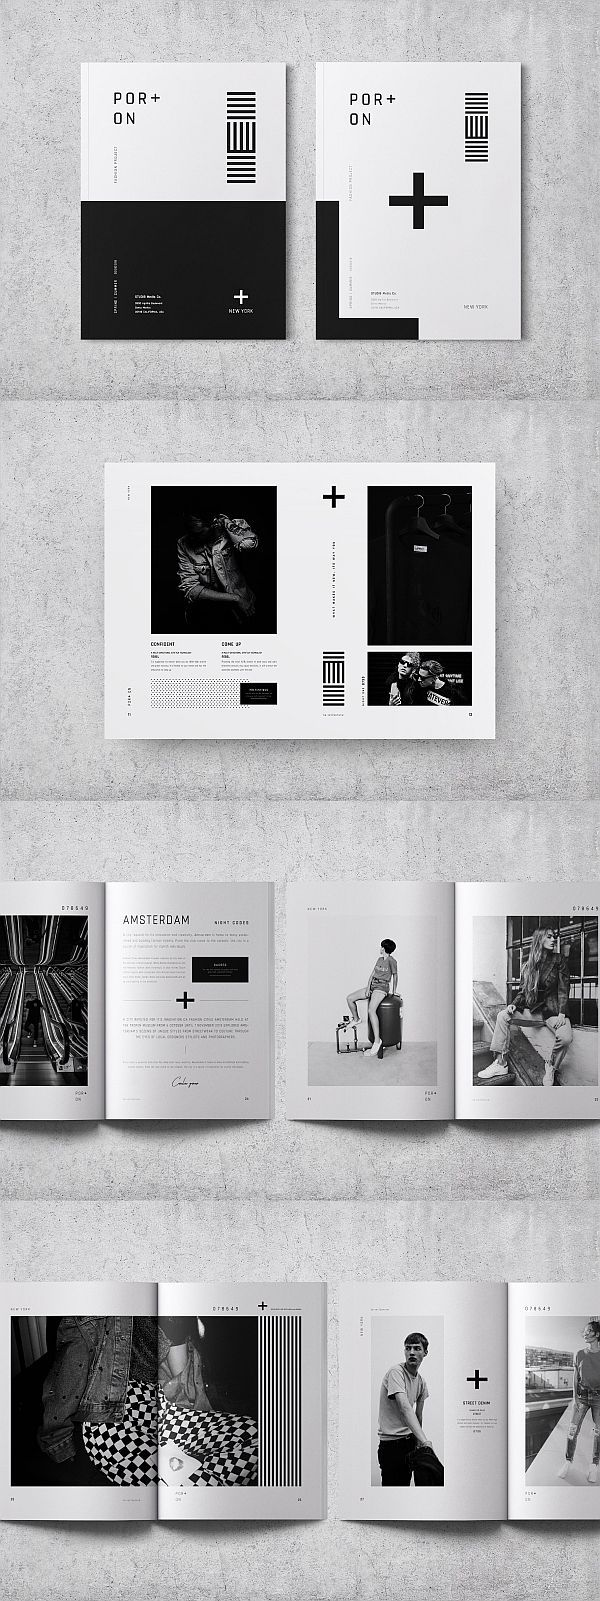 Fashion Lookbook Template Fashion Lookbook Template Fashion Lookbook Template Fashion Lookbook Template